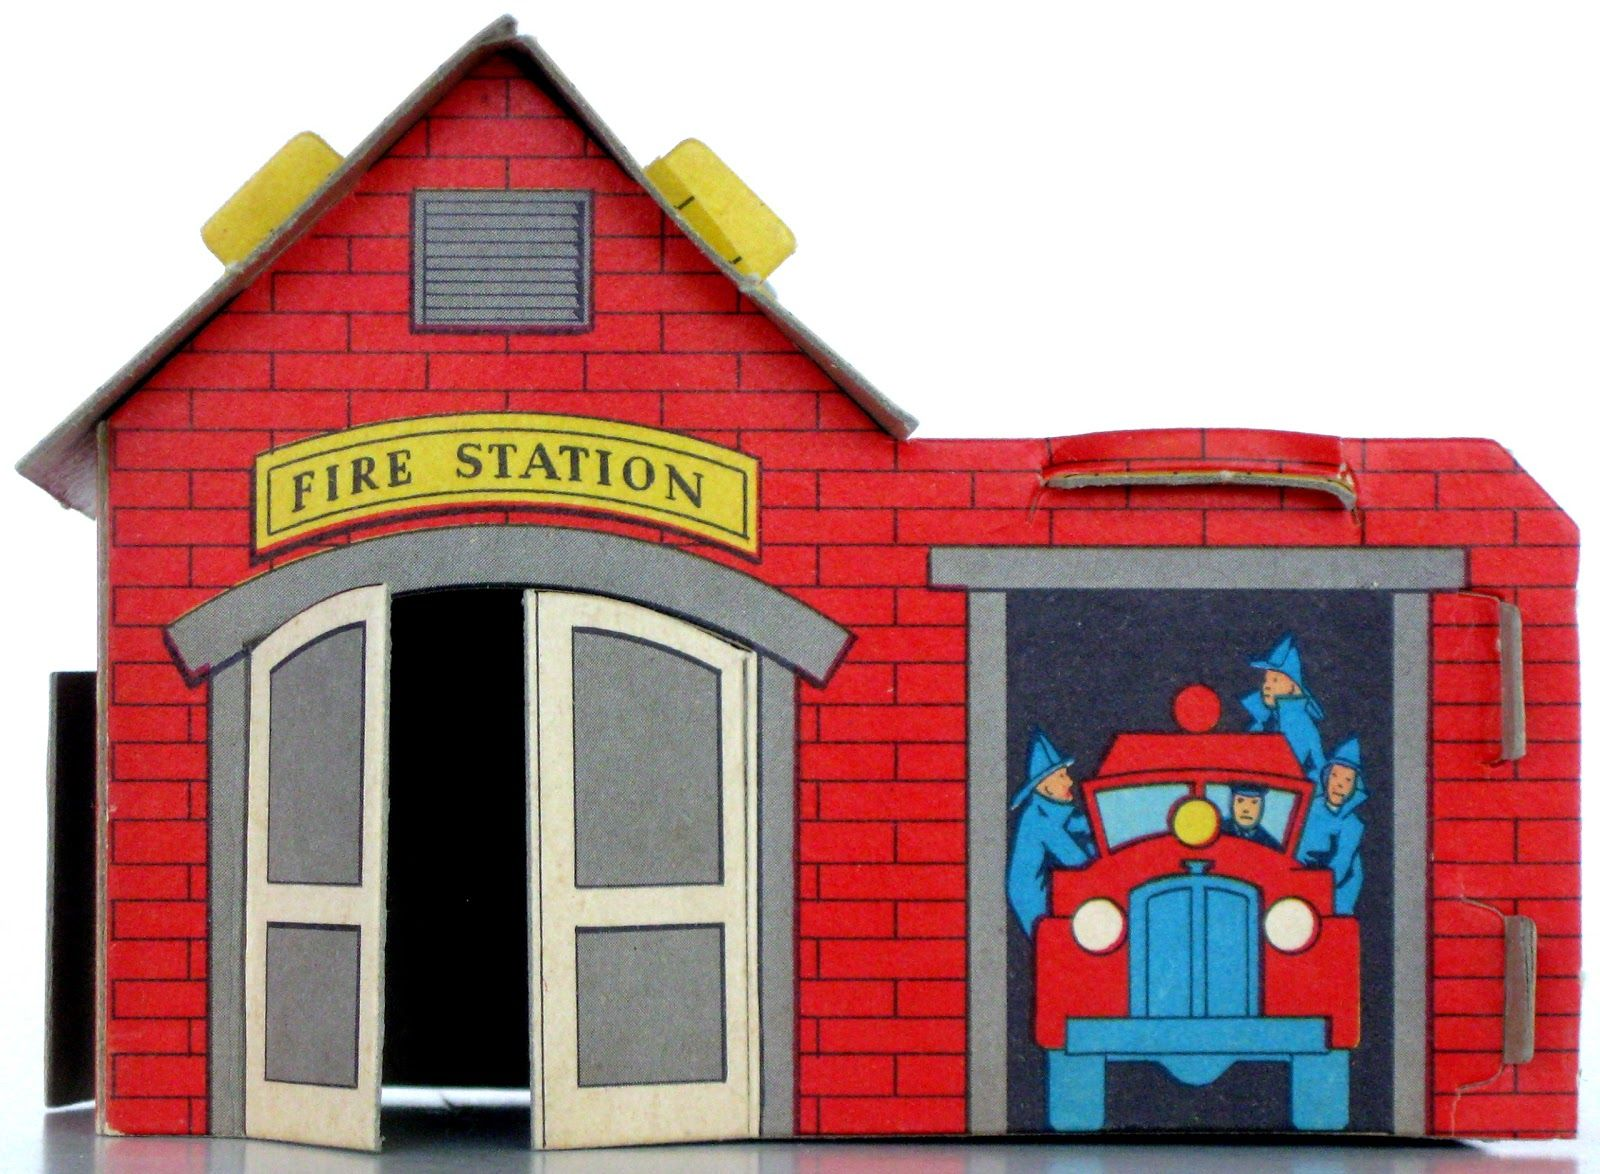 Fire Station Clipart Clipart Kid Fire Station Firefighter Birthday Cardboard Box Houses